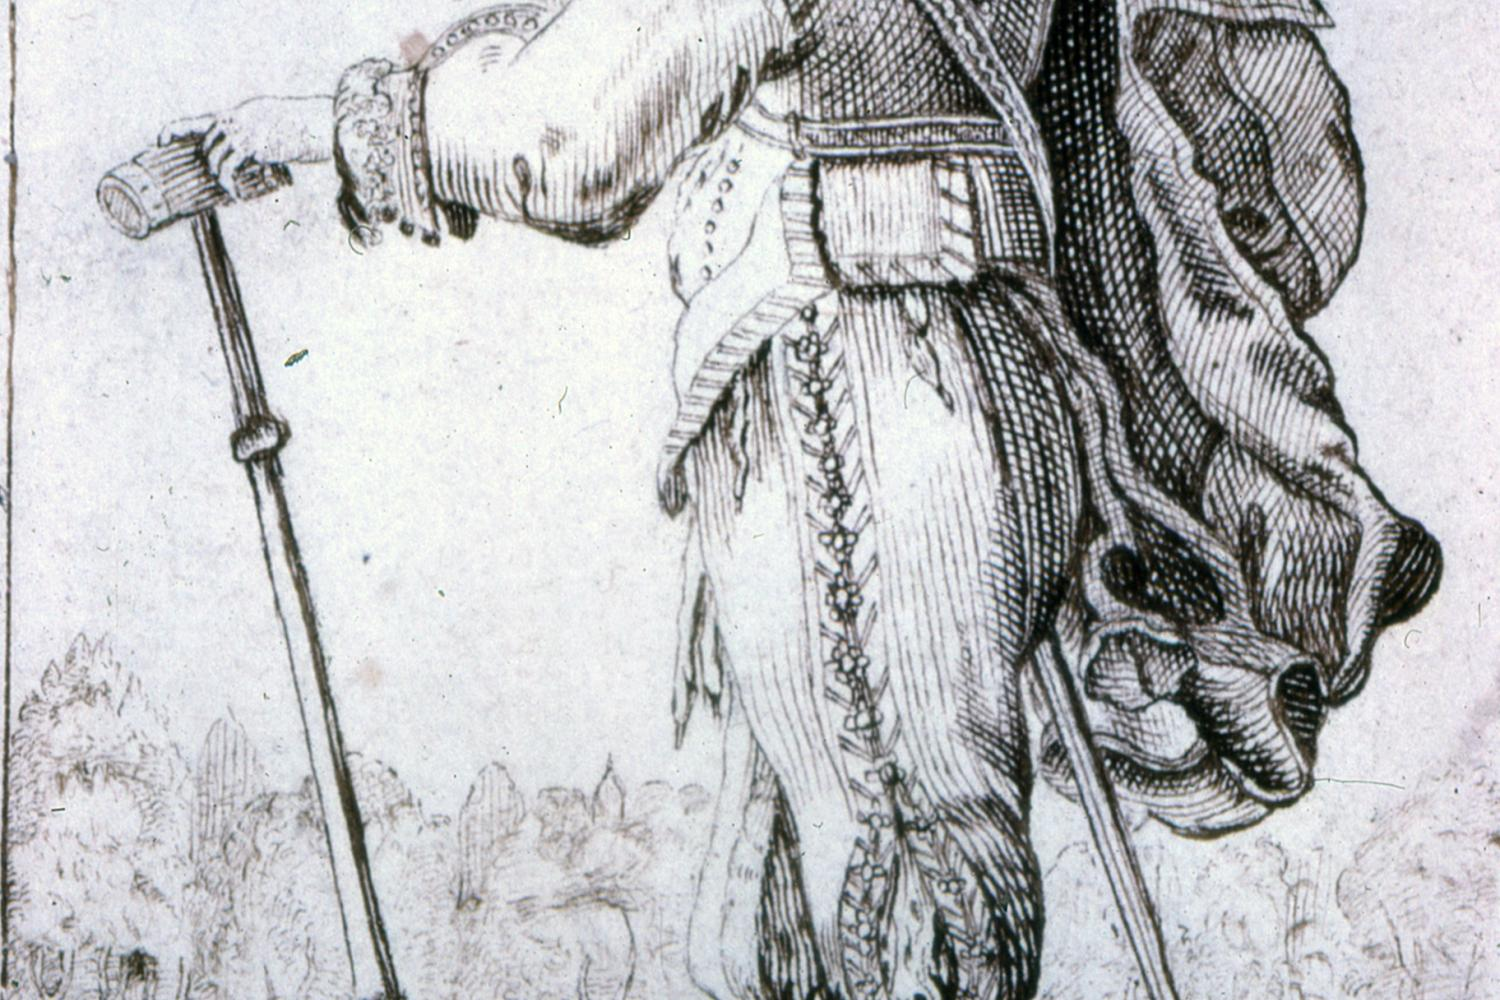 print of a renaissance era man with a fancy hat facing away from the viewer